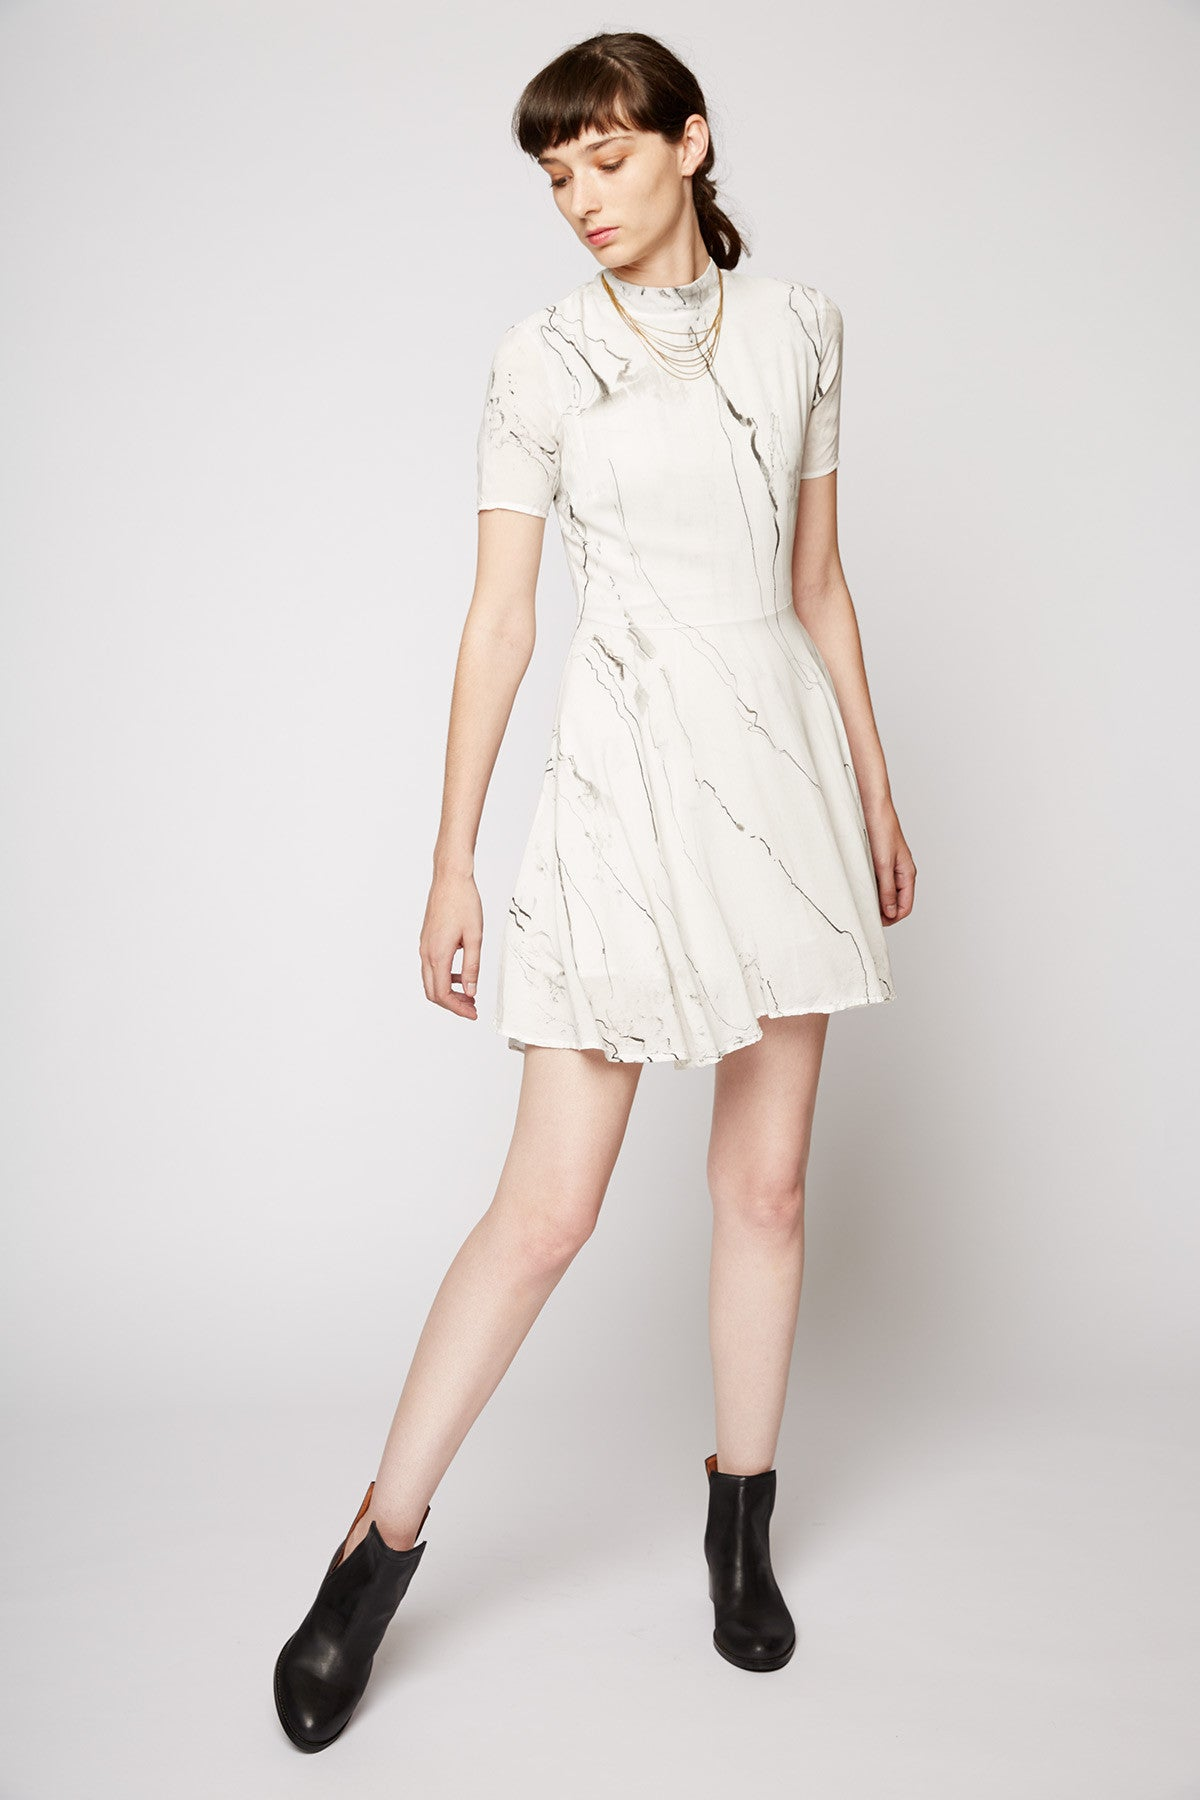 Tina + Jo Skater Dress in Marble